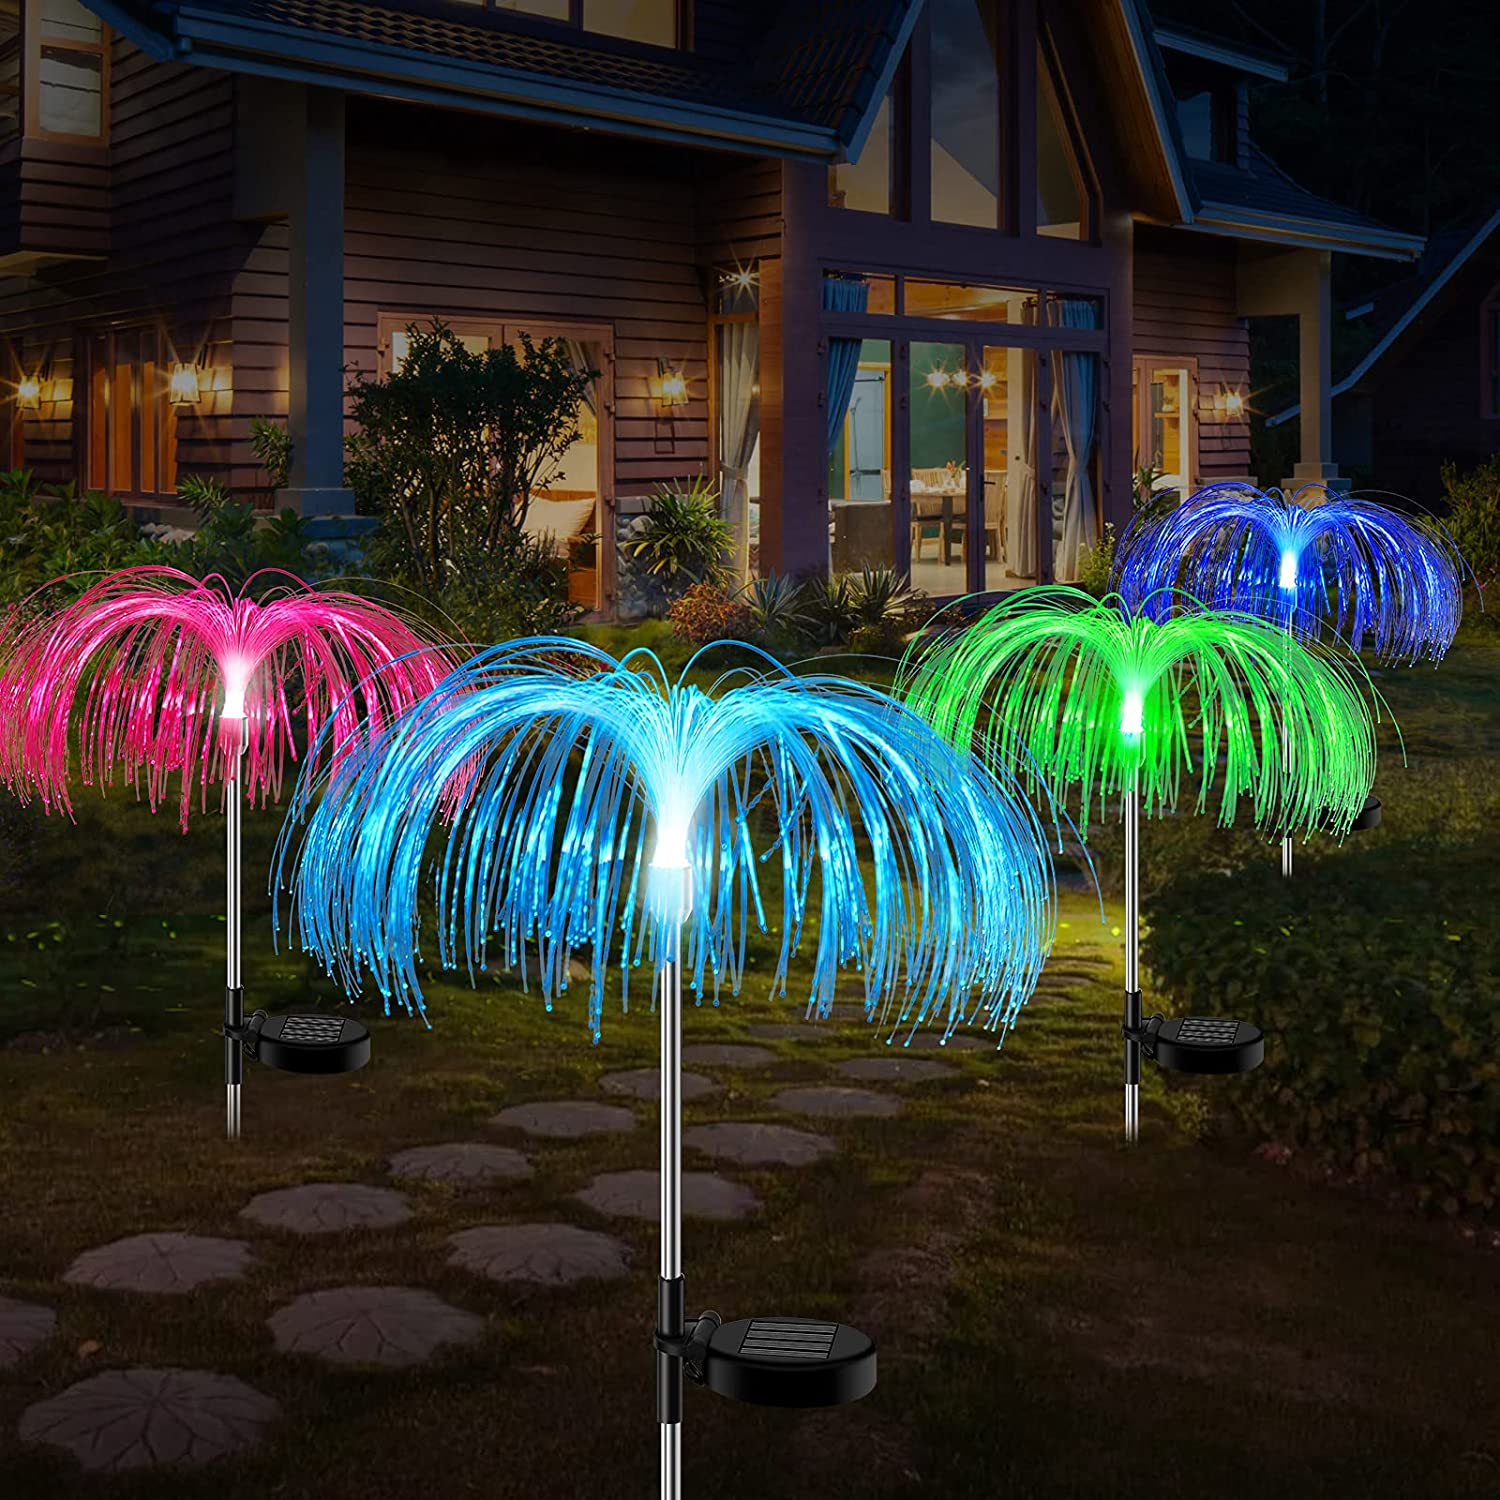 Solar Garden Lights Outdoor 4 Pack, Upgraded 7 Color Changing Solar Lights Outdoor Decorative, Garden Decorations Waterproof Solar Optical Fiber Light for Yard Patio Pathway Holiday Christmas Decor